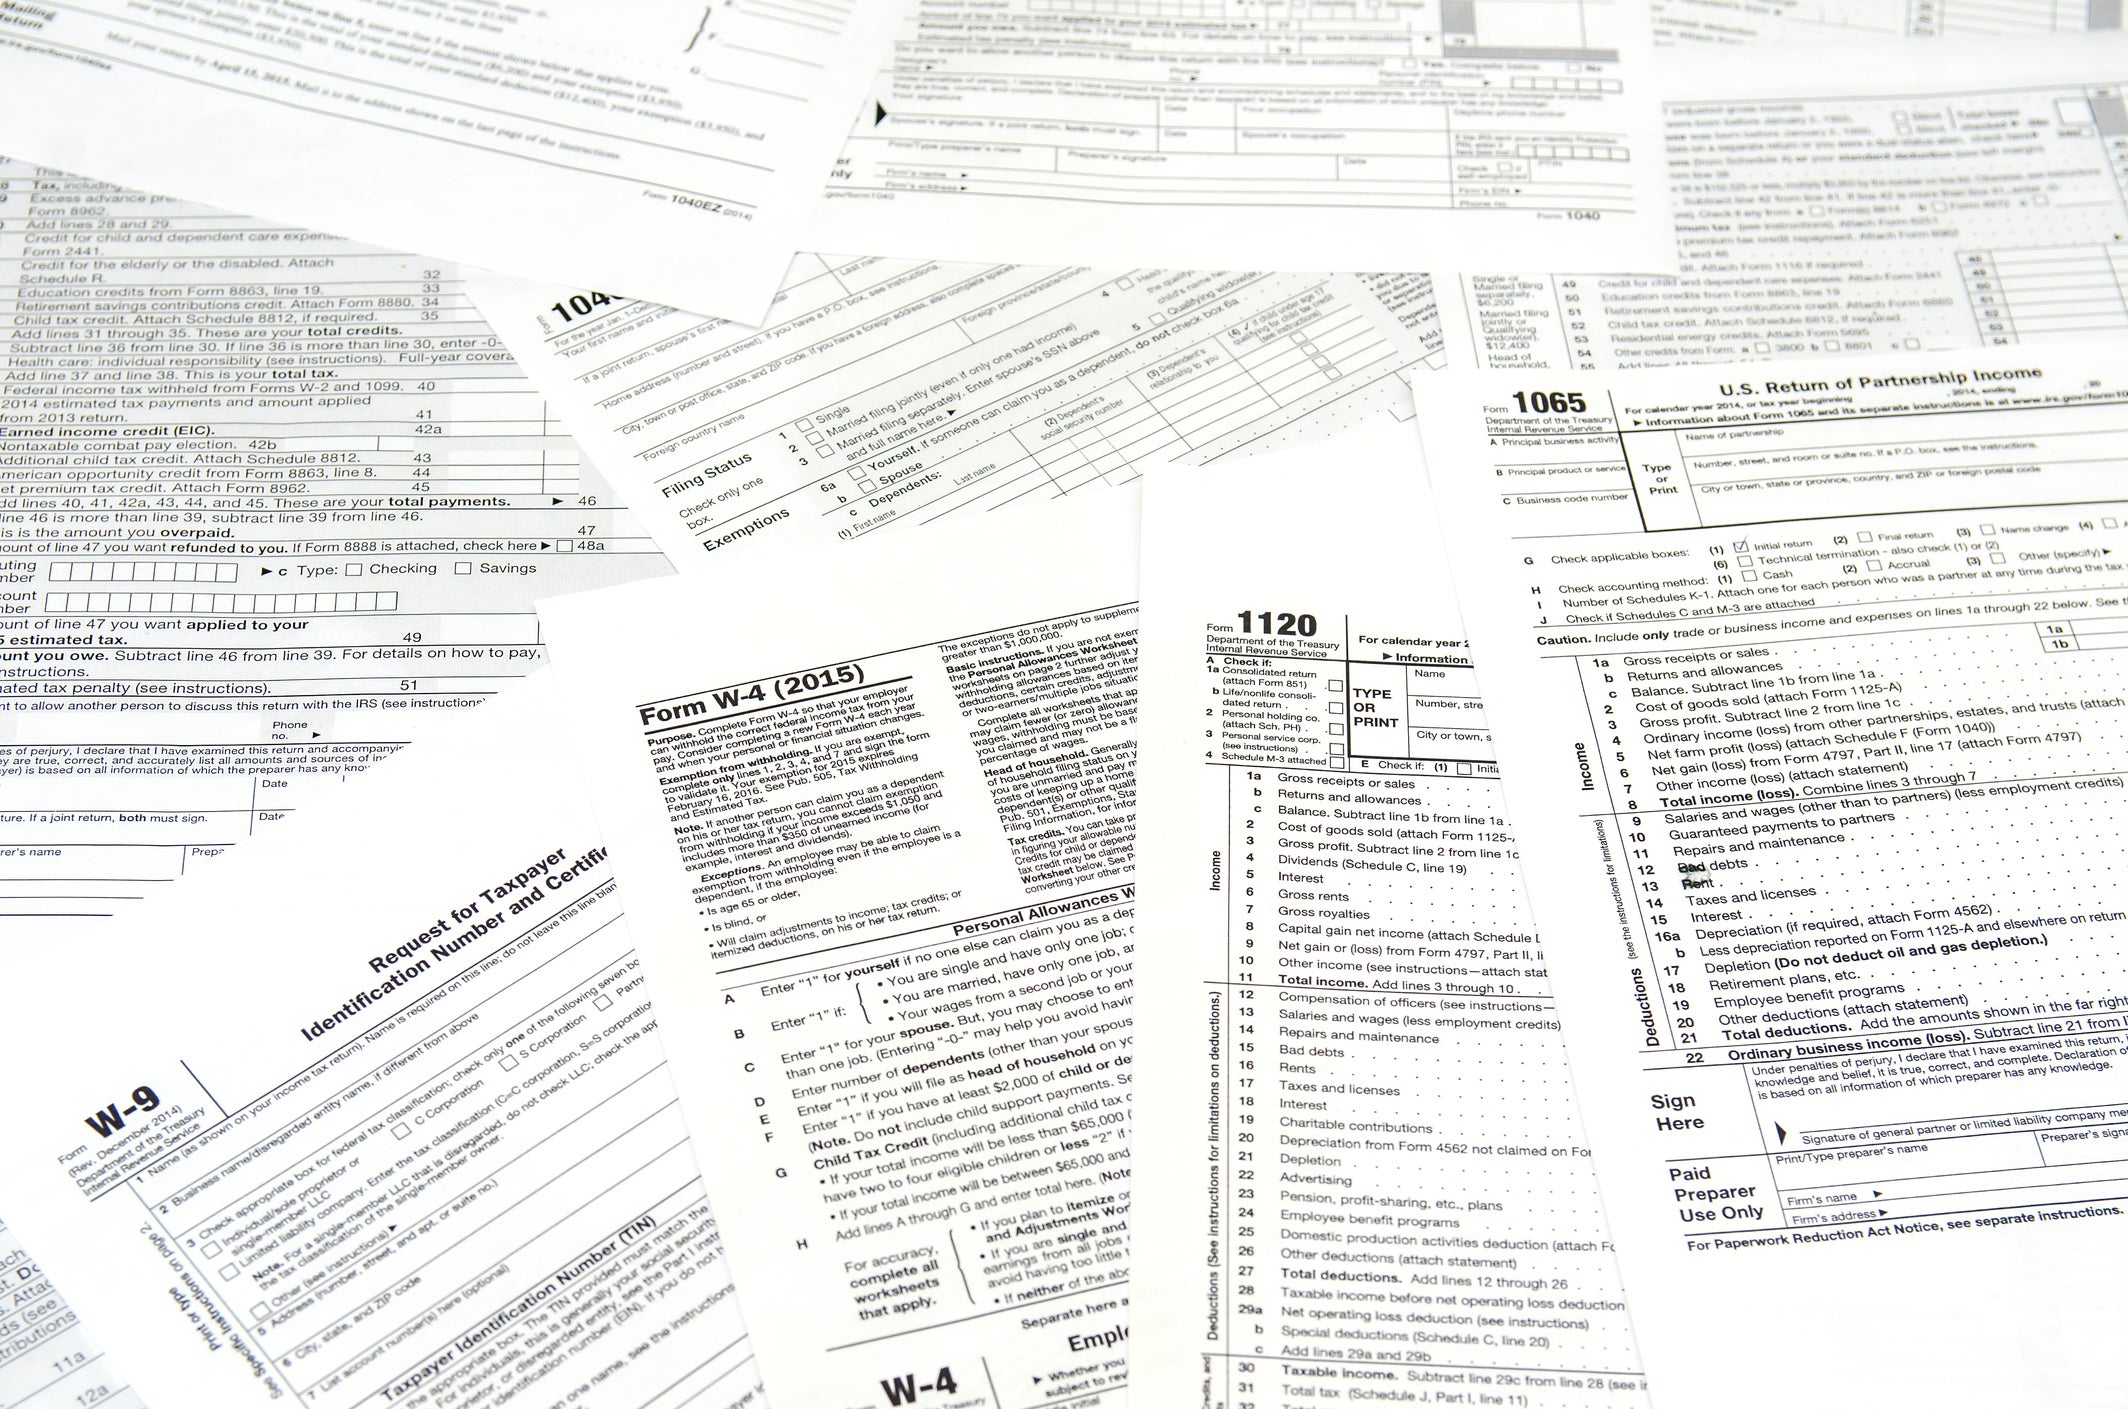 When Will My 2018 Tax Forms Come? | The Motley Fool